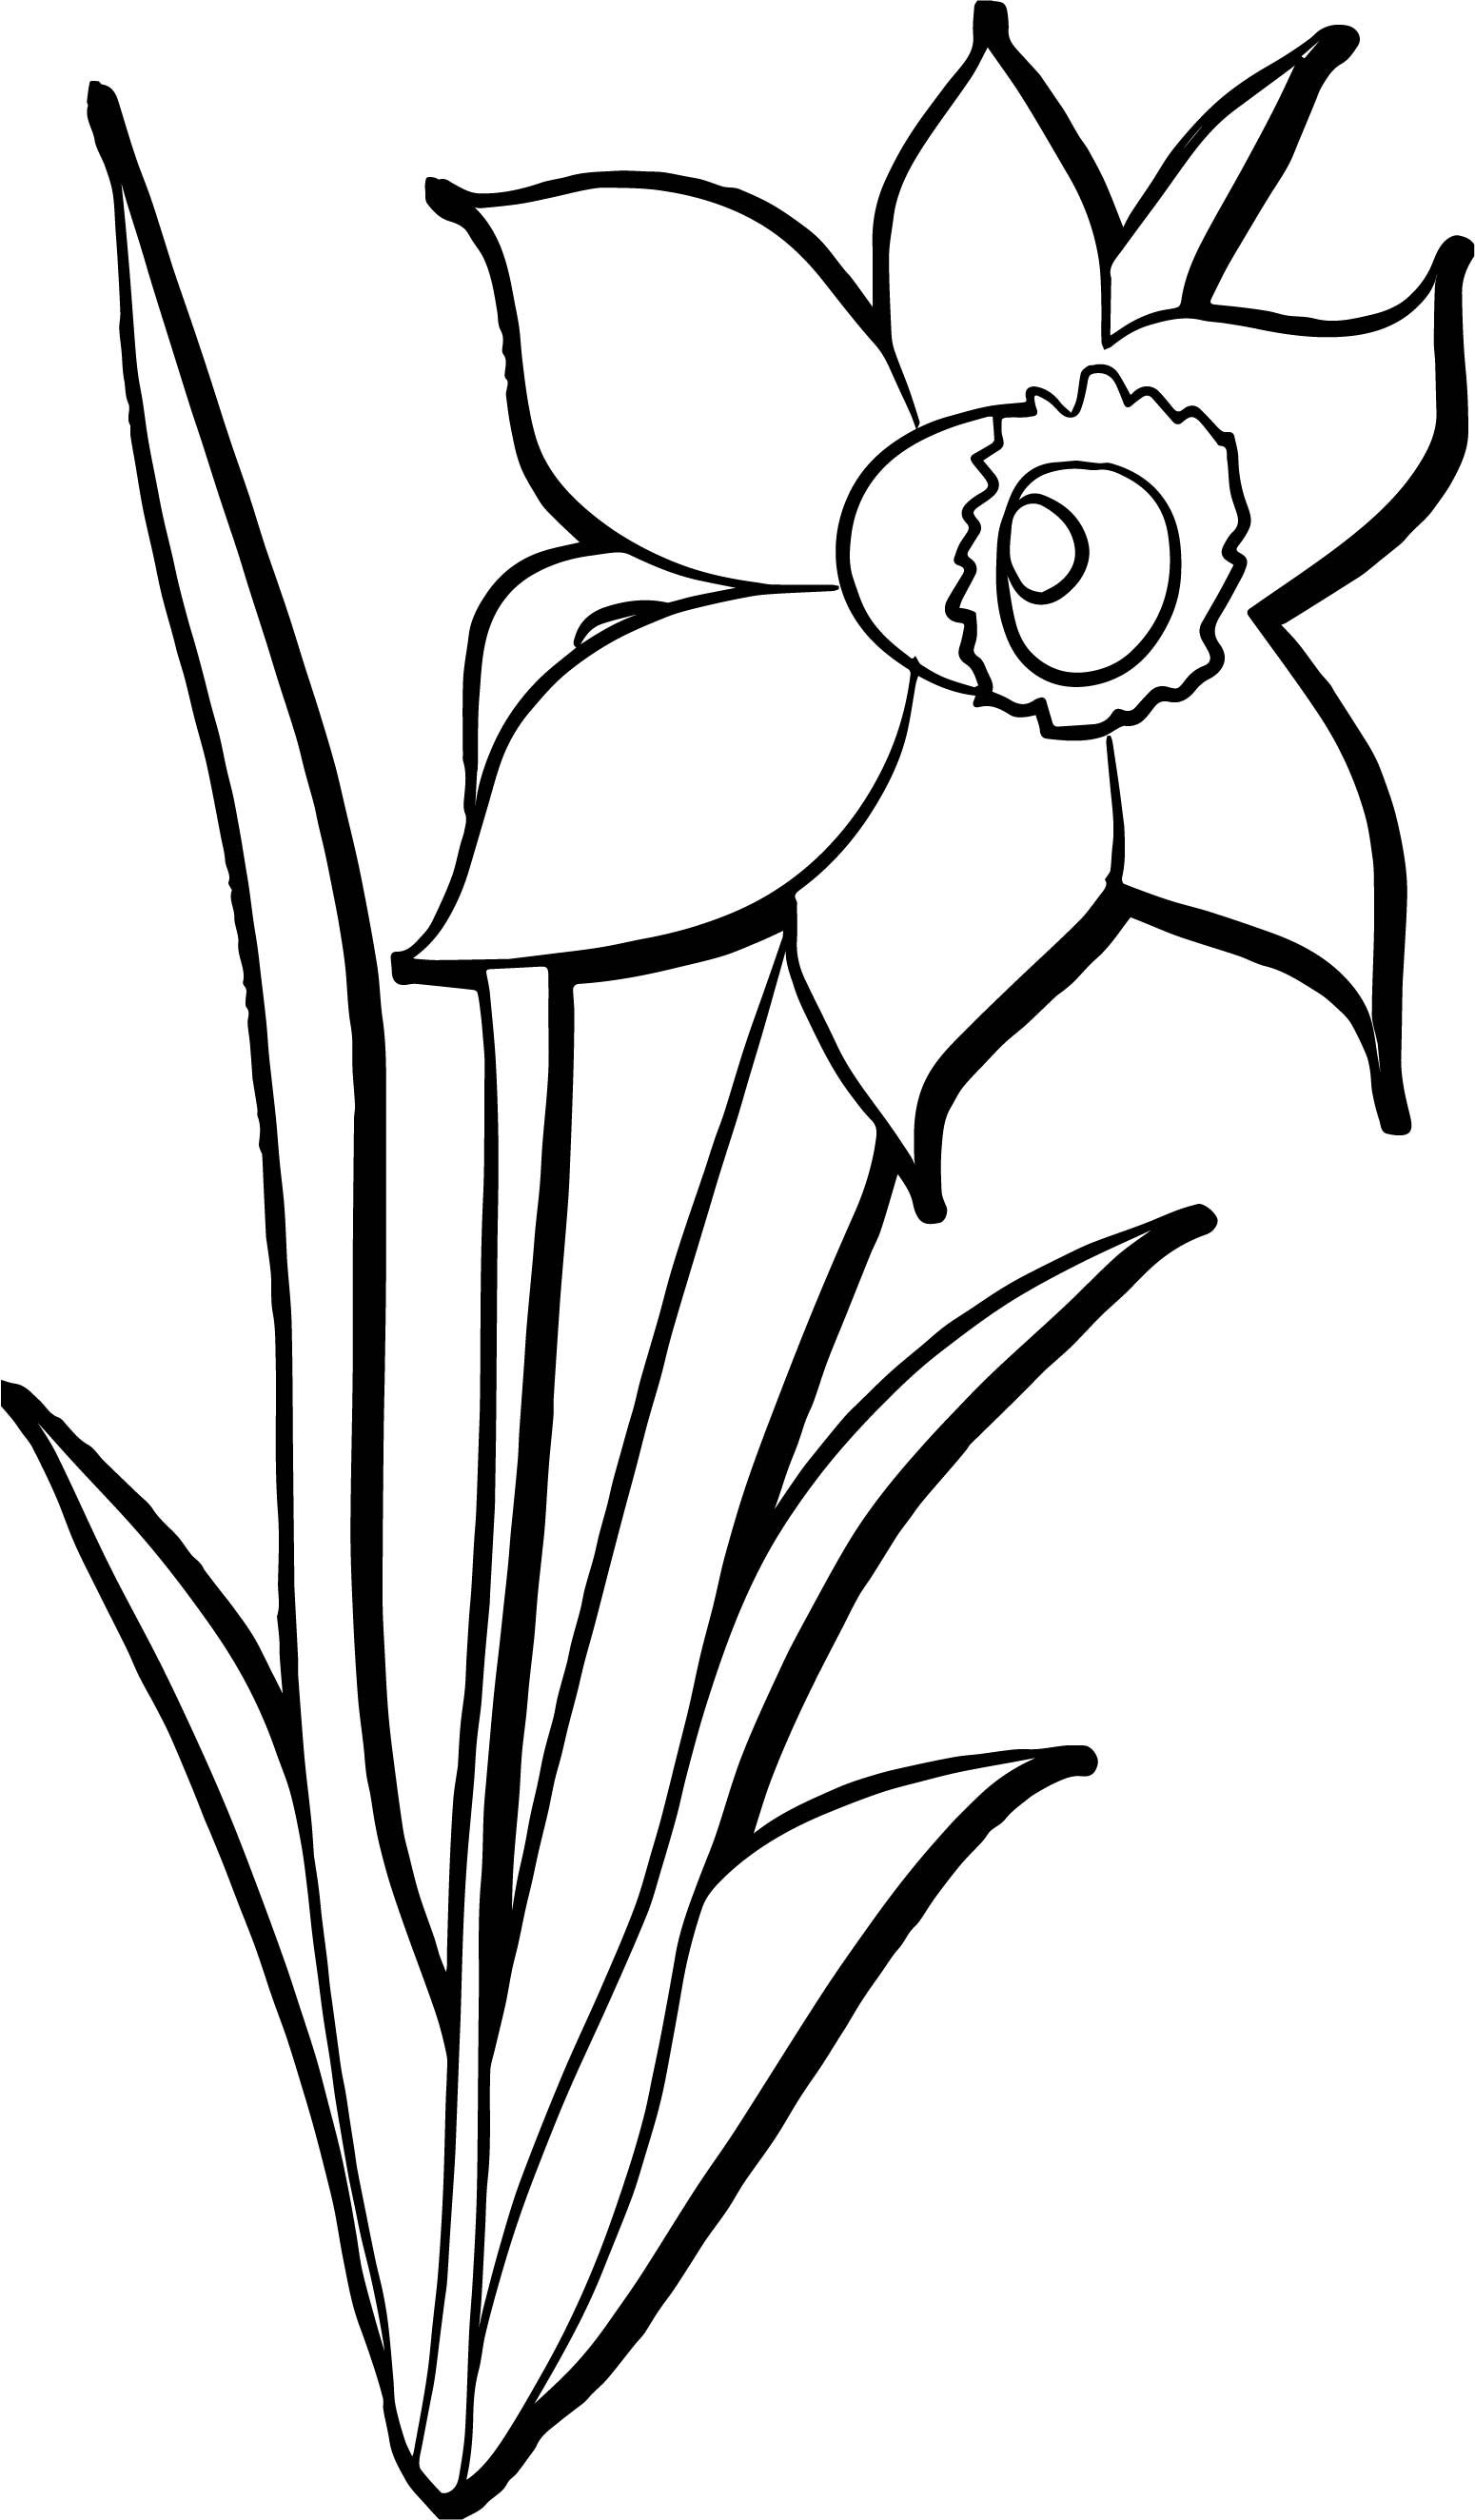 Rainforest flower coloring pages - Printable May Flowers Coloring Pages